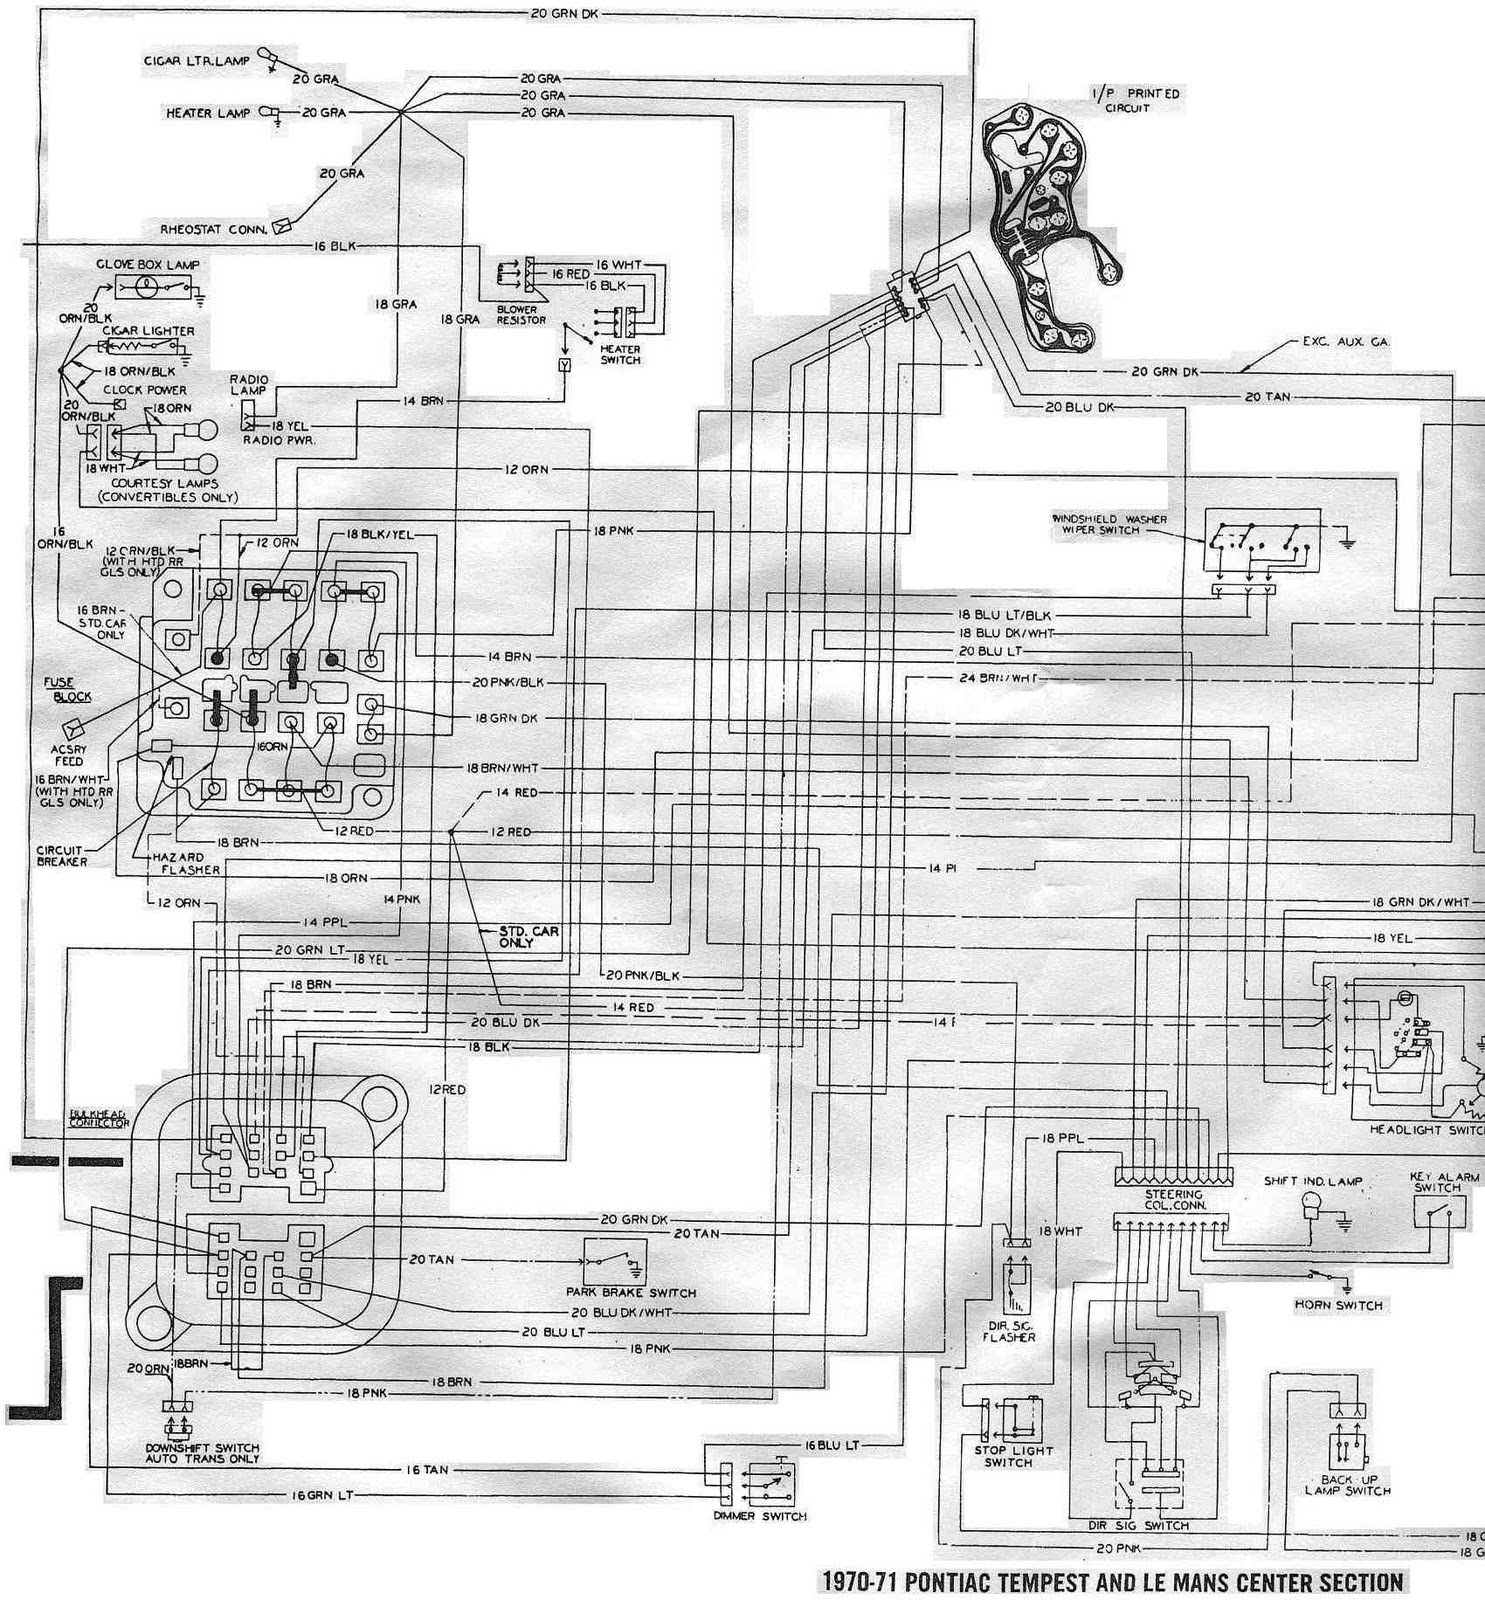 1965 Pontiac Le Mans Ignition Wiring Diagram - Online Schematic ...